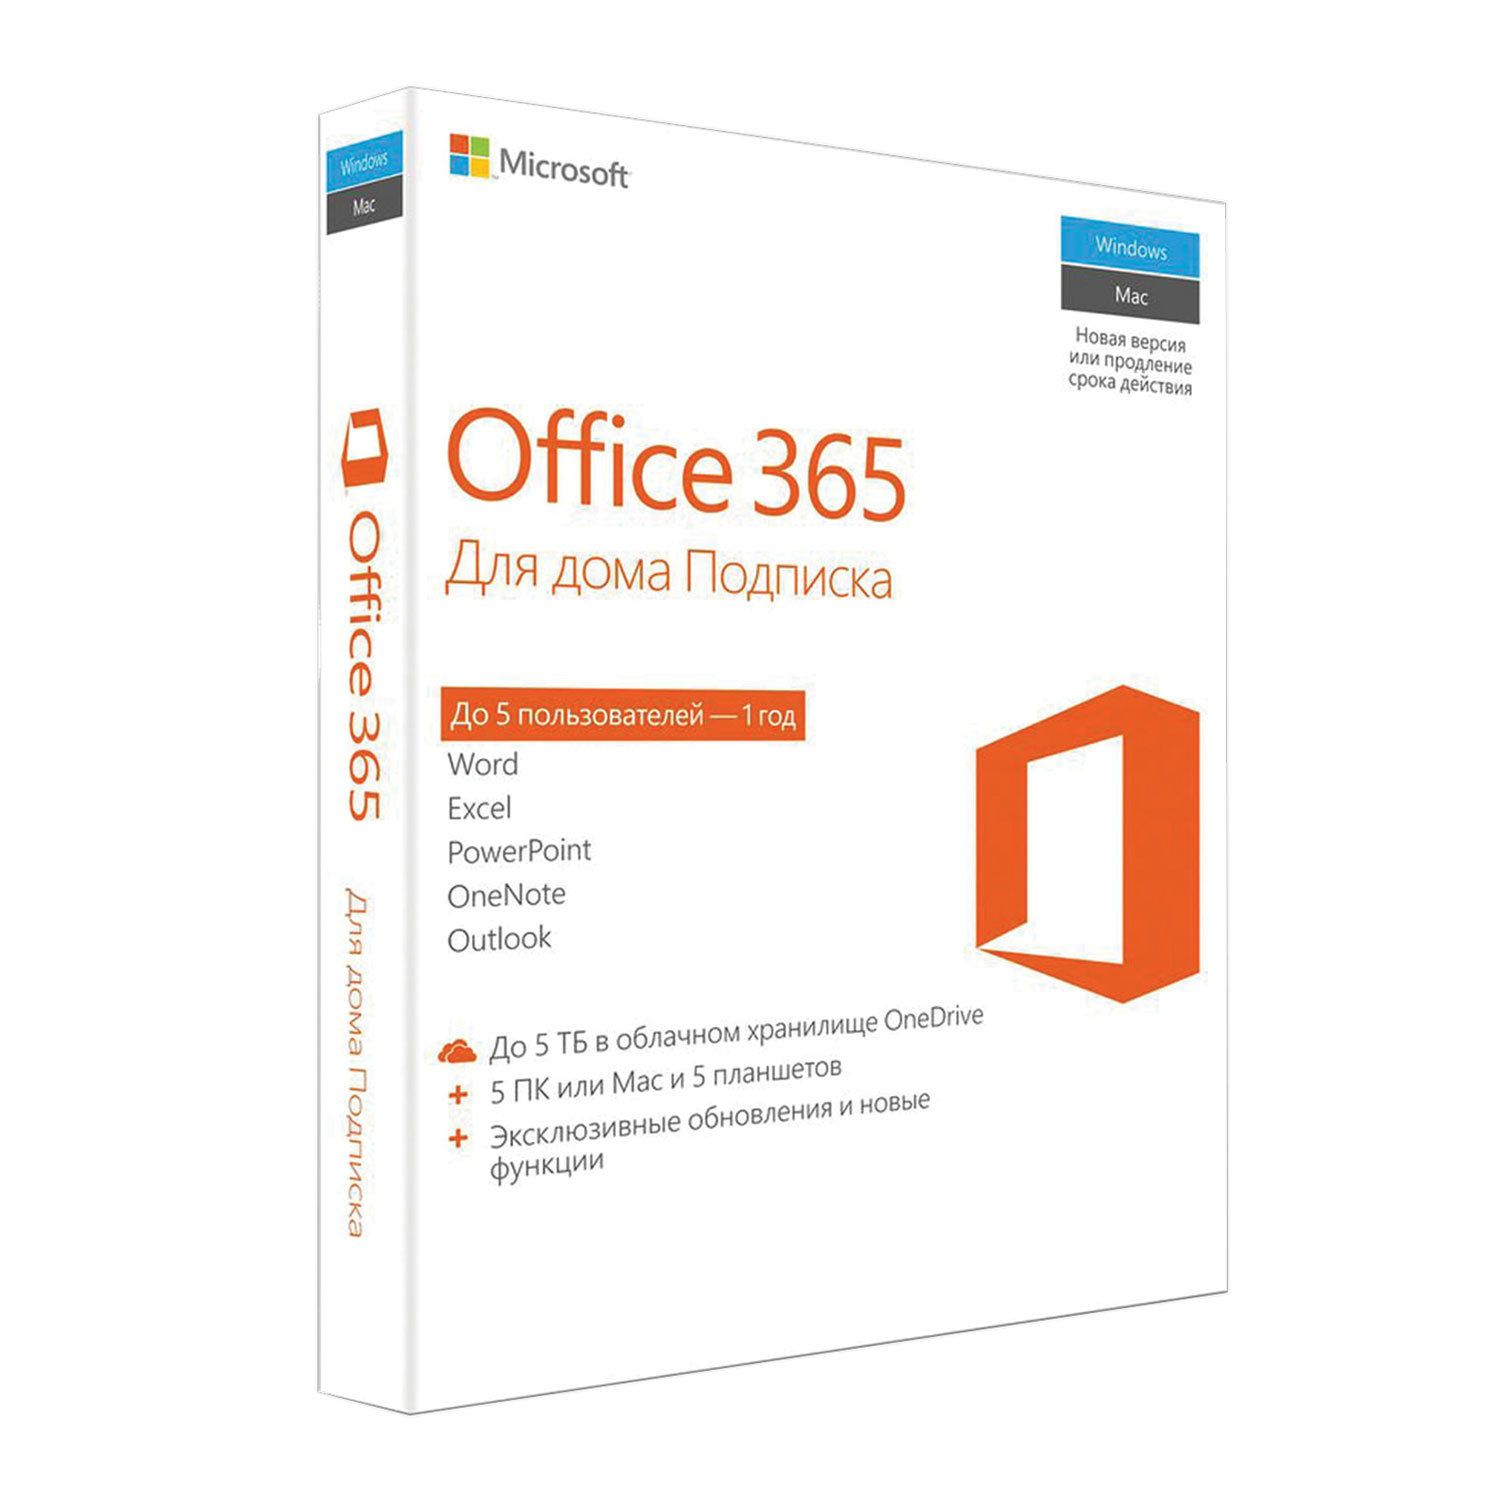 MICROSOFT / Office 365 Business Premium software, 5 PCs, 1 year